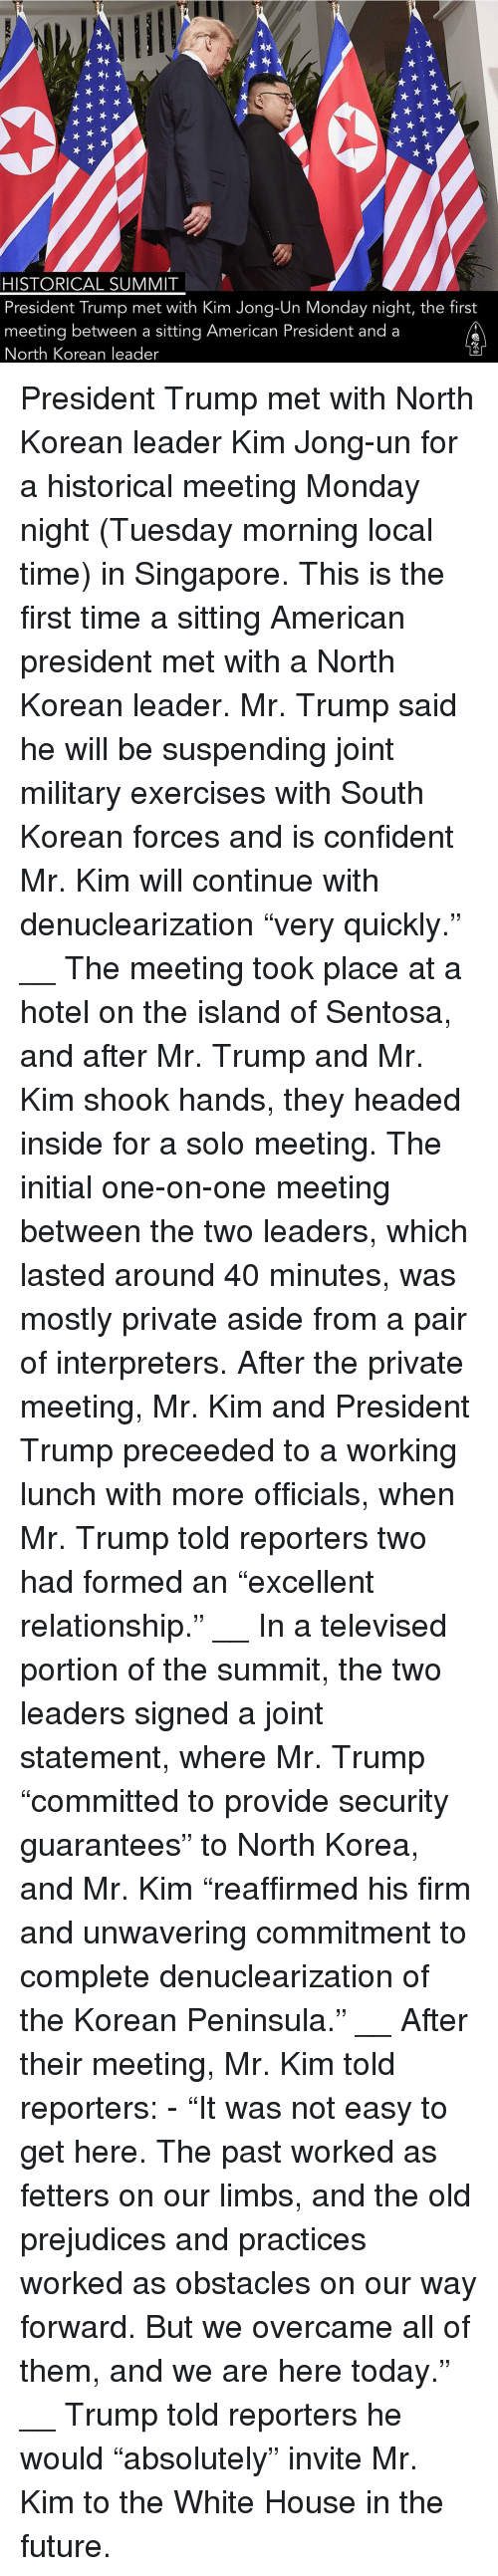 "Mr Trump: HISTORICAL SUMMIT  President Trump met with Kim Jong-Un Monday night, the first  meeting between a sitting American President and a  North Korean leader President Trump met with North Korean leader Kim Jong-un for a historical meeting Monday night (Tuesday morning local time) in Singapore. This is the first time a sitting American president met with a North Korean leader. Mr. Trump said he will be suspending joint military exercises with South Korean forces and is confident Mr. Kim will continue with denuclearization ""very quickly."" __ The meeting took place at a hotel on the island of Sentosa, and after Mr. Trump and Mr. Kim shook hands, they headed inside for a solo meeting. The initial one-on-one meeting between the two leaders, which lasted around 40 minutes, was mostly private aside from a pair of interpreters. After the private meeting, Mr. Kim and President Trump preceeded to a working lunch with more officials, when Mr. Trump told reporters two had formed an ""excellent relationship."" __ In a televised portion of the summit, the two leaders signed a joint statement, where Mr. Trump ""committed to provide security guarantees"" to North Korea, and Mr. Kim ""reaffirmed his firm and unwavering commitment to complete denuclearization of the Korean Peninsula."" __ After their meeting, Mr. Kim told reporters: - ""It was not easy to get here. The past worked as fetters on our limbs, and the old prejudices and practices worked as obstacles on our way forward. But we overcame all of them, and we are here today."" __ Trump told reporters he would ""absolutely"" invite Mr. Kim to the White House in the future."